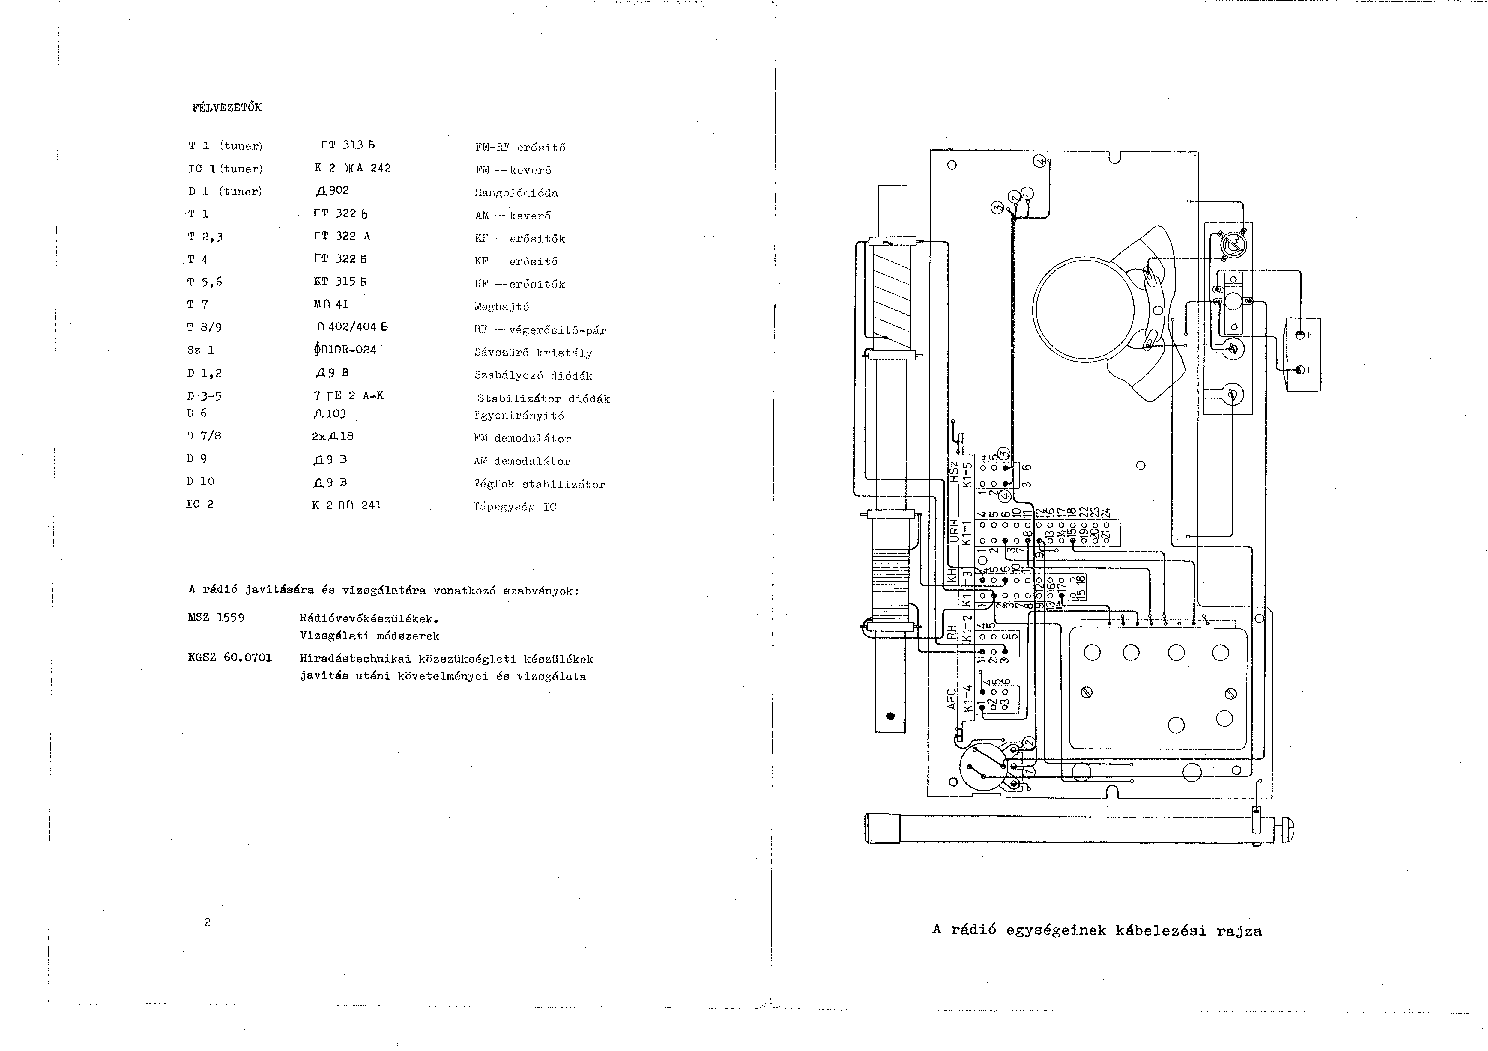 SOKOL 308 Service Manual download, schematics, eeprom